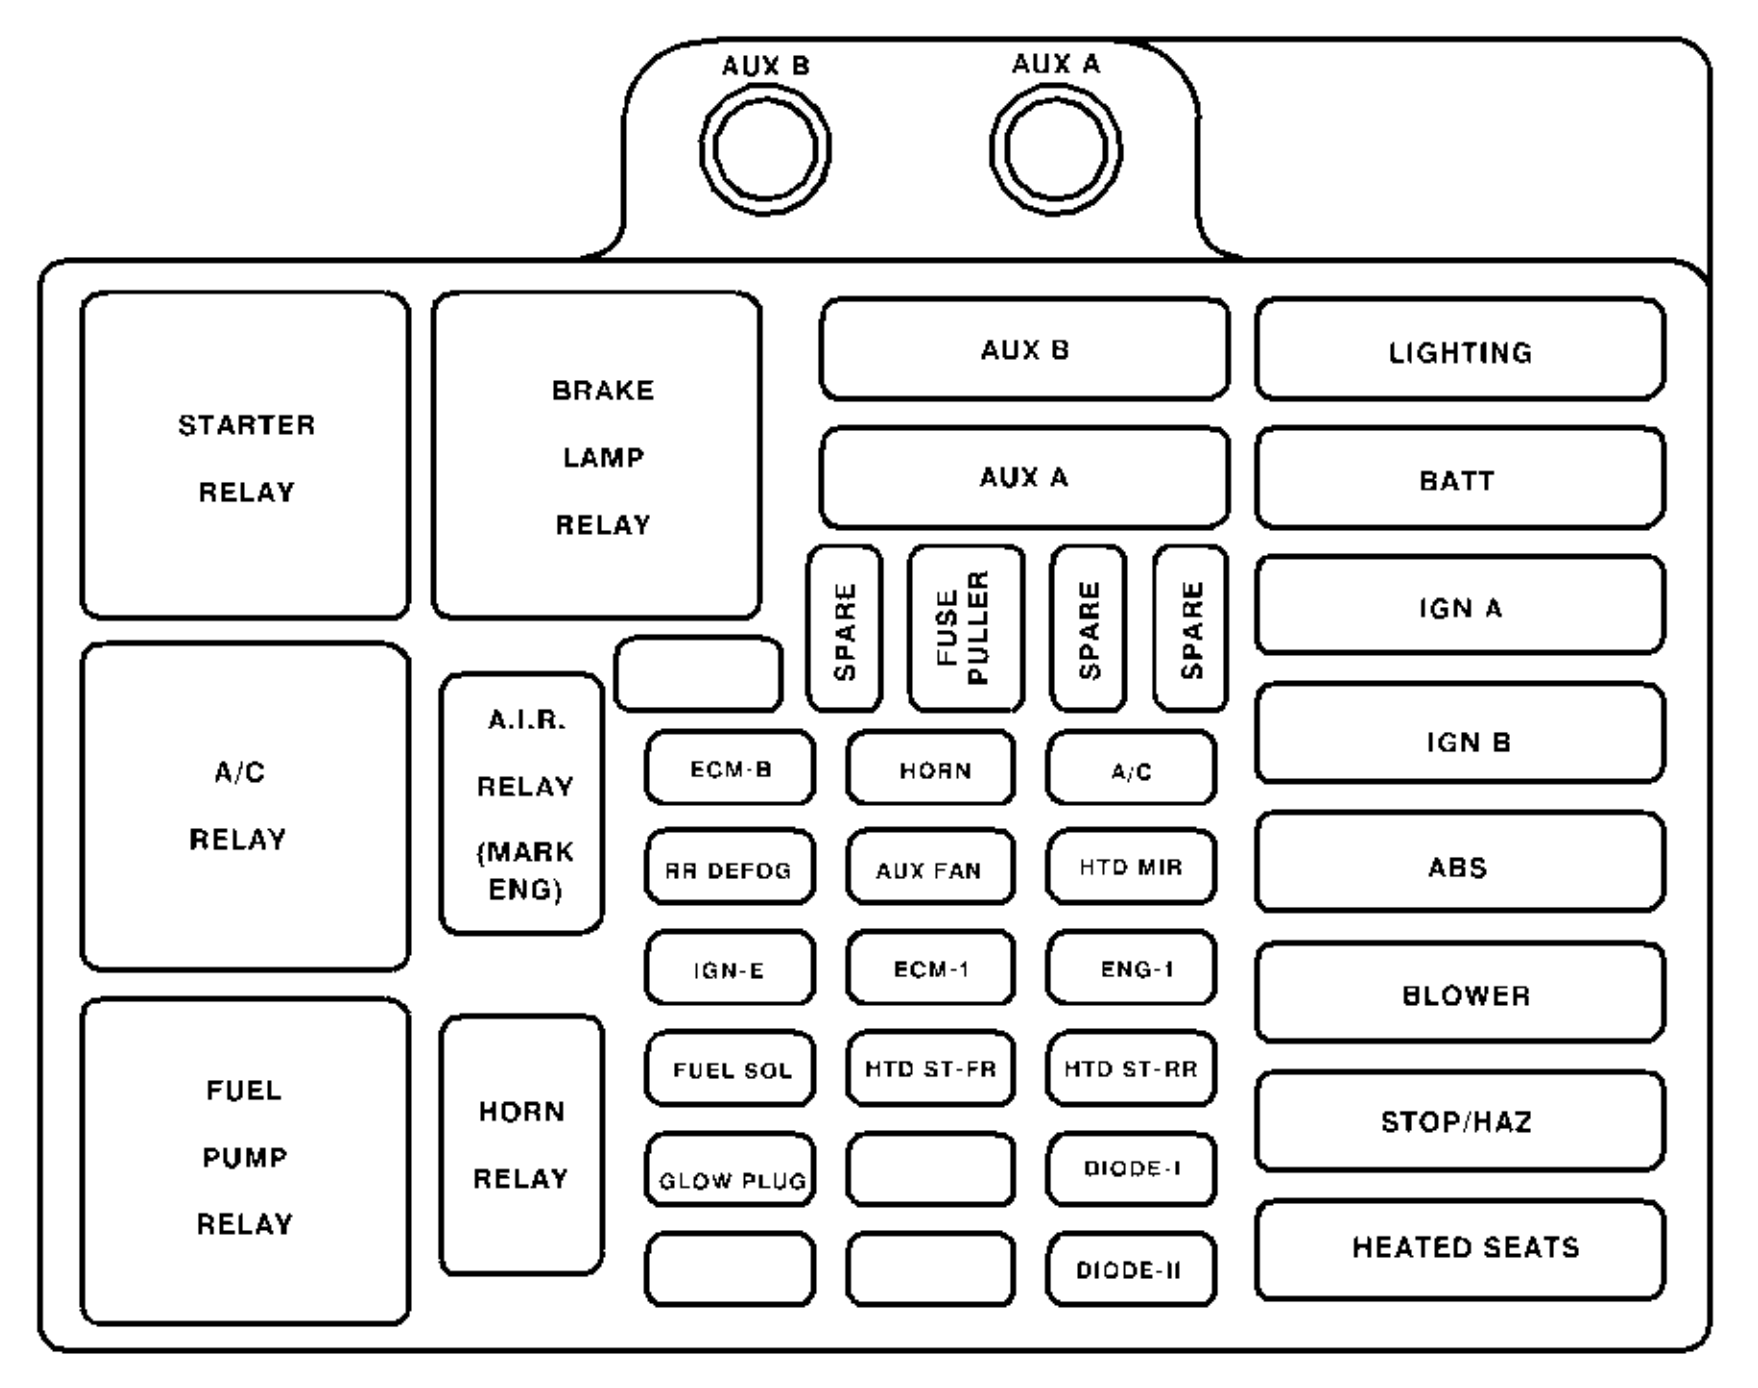 1999 tahoe fuse diagram schematics wiring diagrams u2022 rh hokispokisrecords com fuse box diagram 2003 chevy trailblazer 2003 chevy express 3500 fuse box diagram